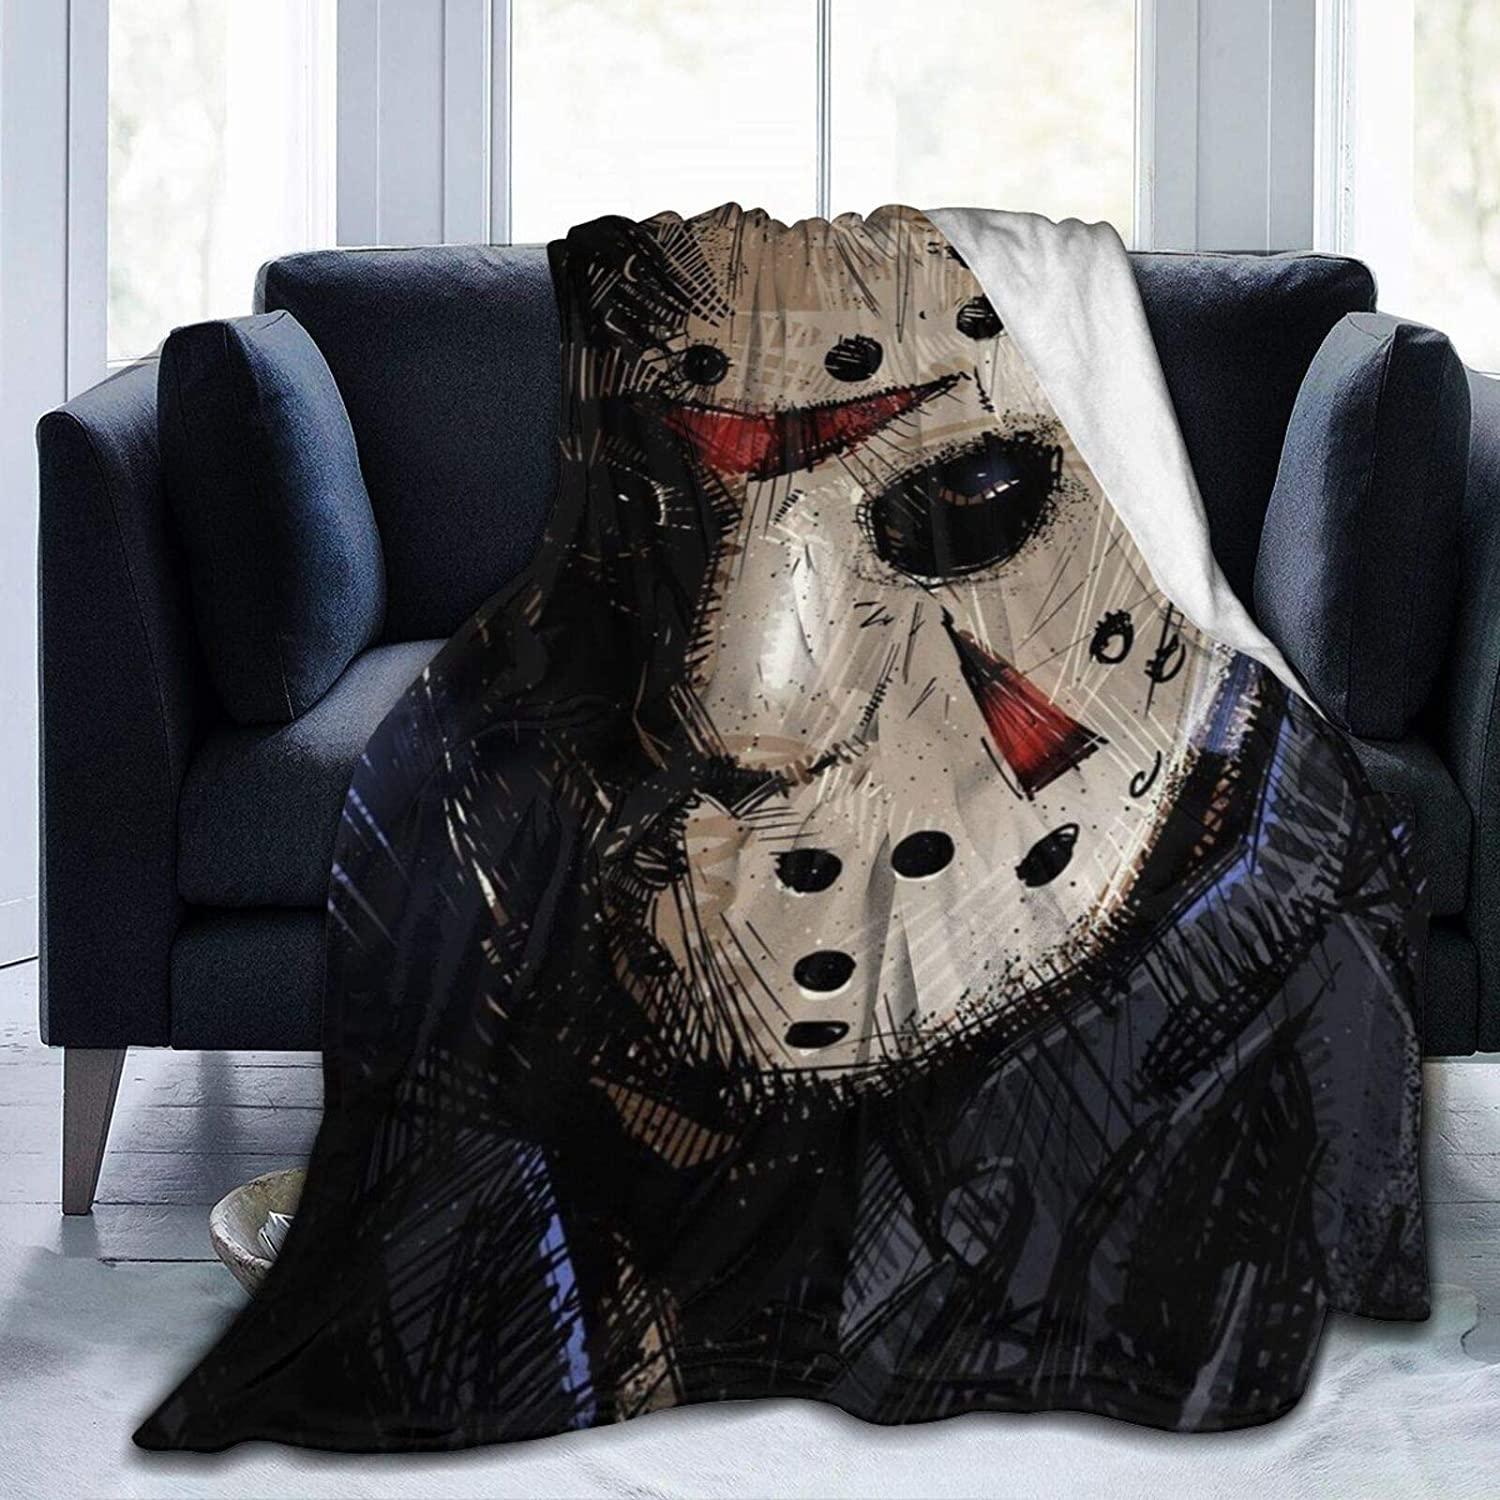 Tuxhhzdda Jason-Voorhees Blankets Used for Beds Sofas, Warm and Comfortable Microfiber Flannel Lightweight Blankets (Men, Women)